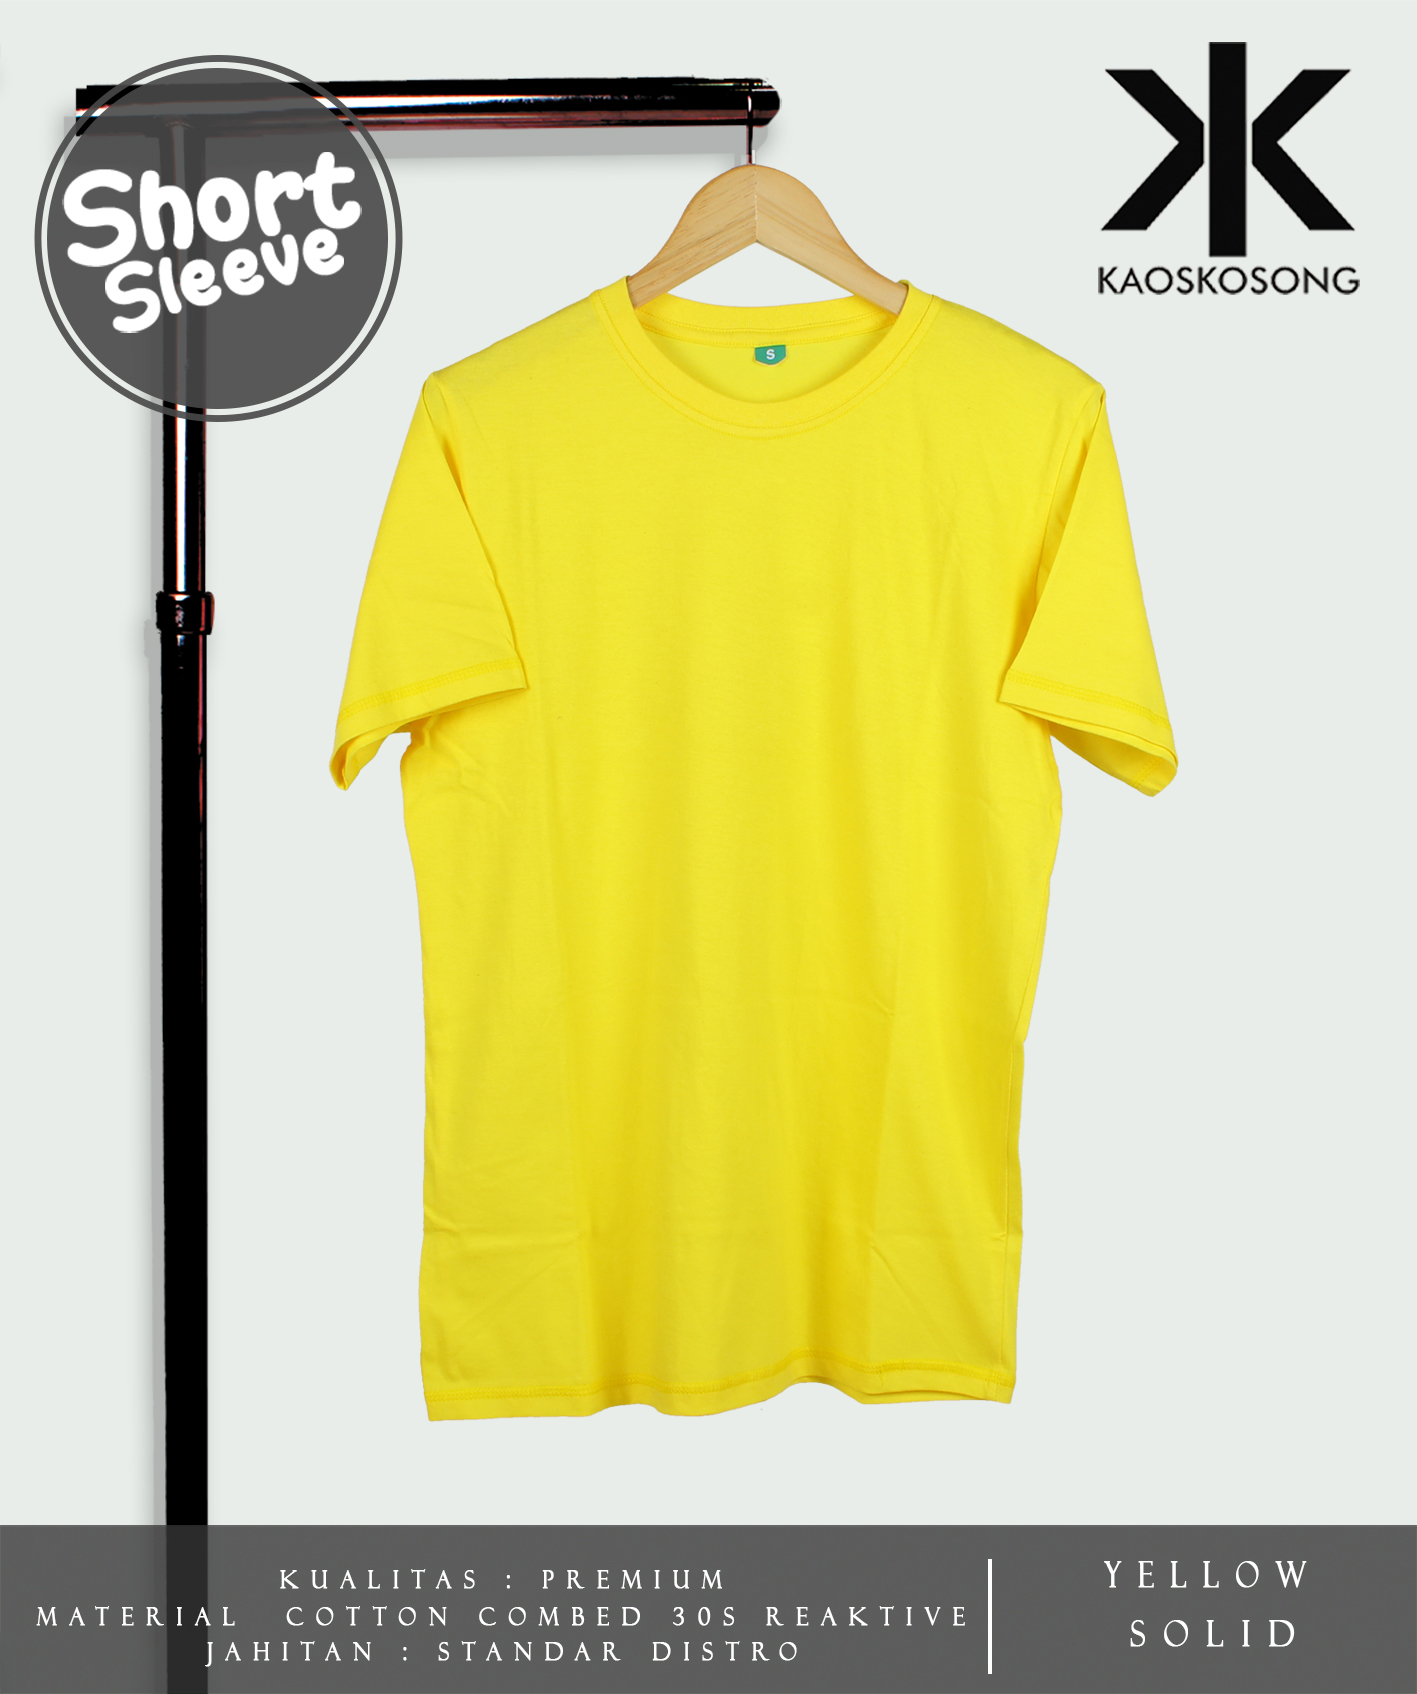 Jual Kaos Polos Yellow Solid Cotton Combed 30s Soft Reaktif Blank Grey Hat Tokopedia